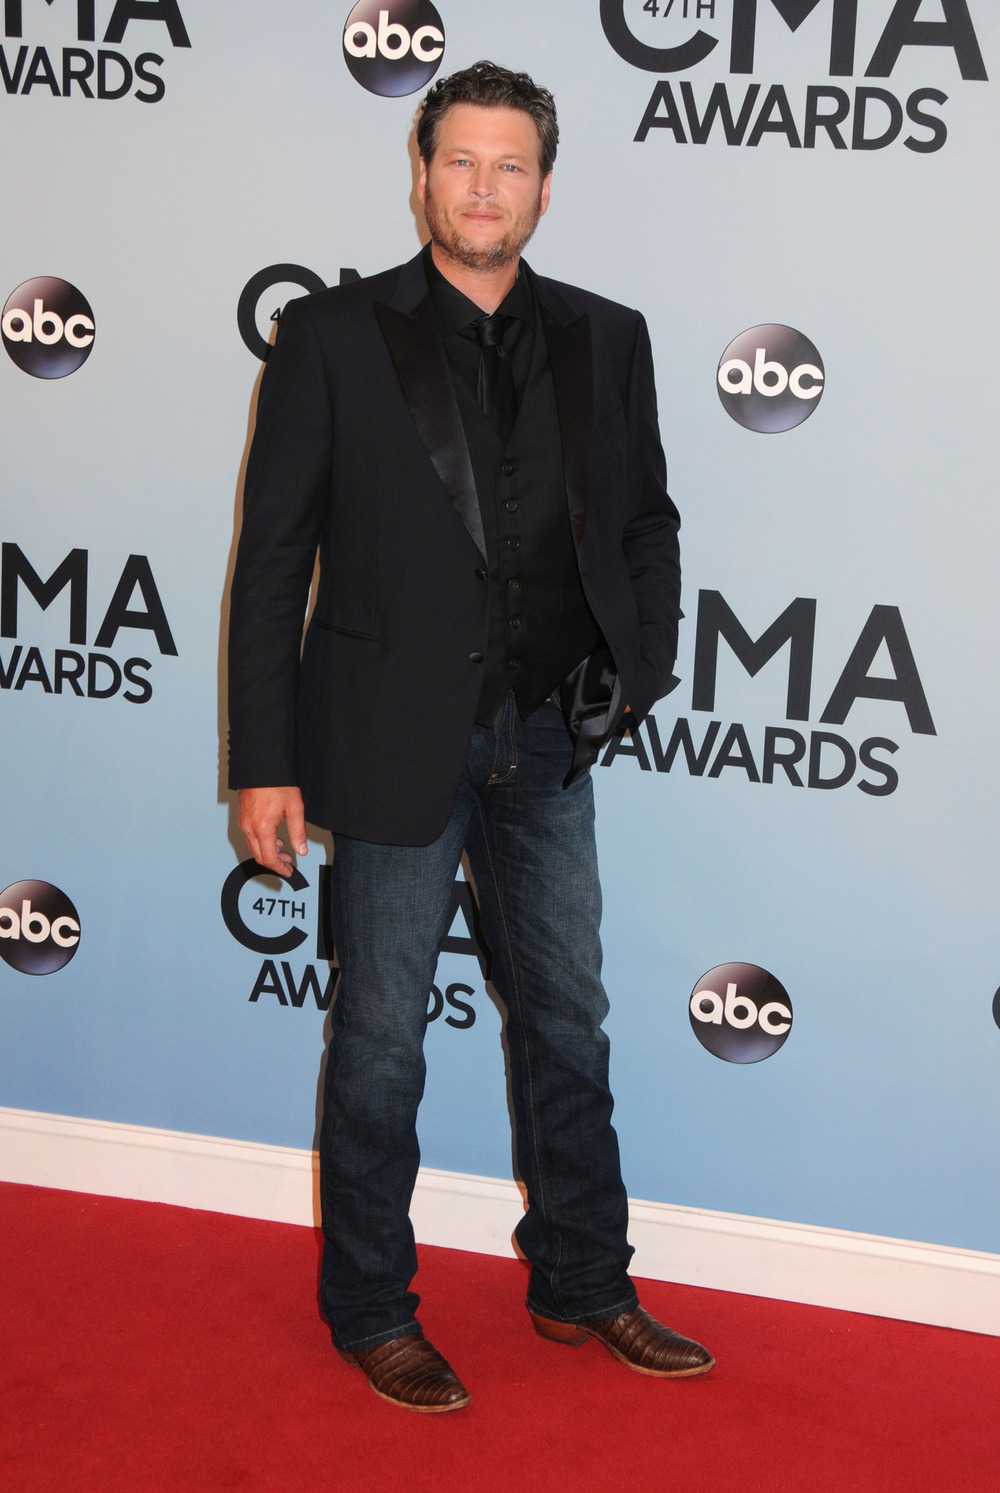 CMA Awards 2013: Blake Shelton Wins Male Vocalist of the Year